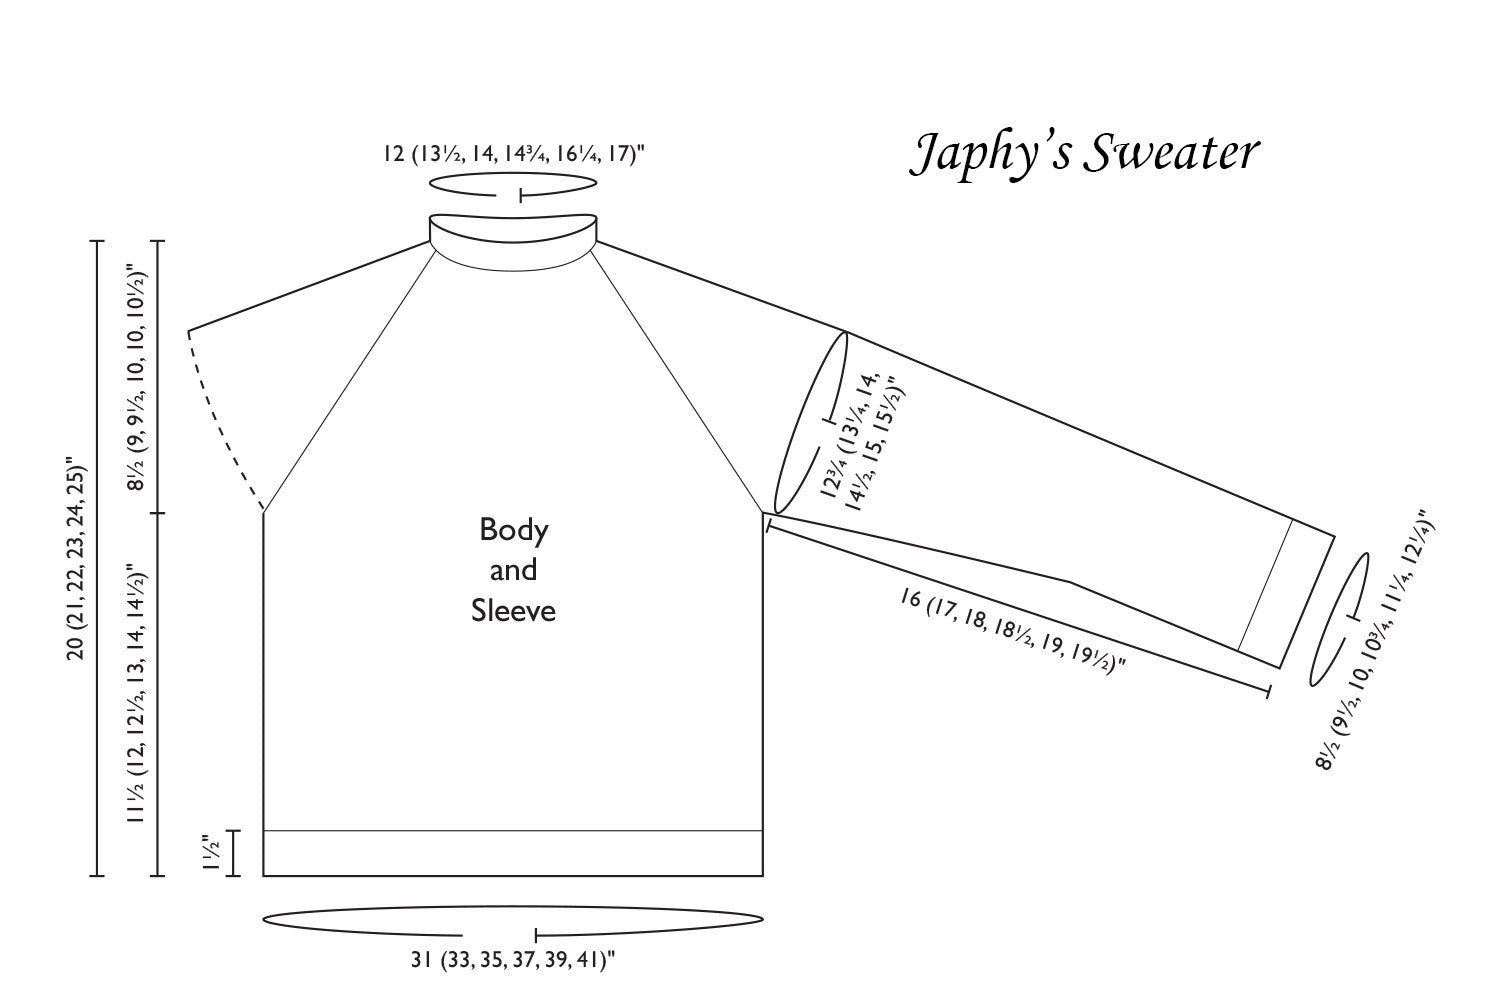 Detailed schematic line drawing with dimensions for Japhy's Sweater pattern